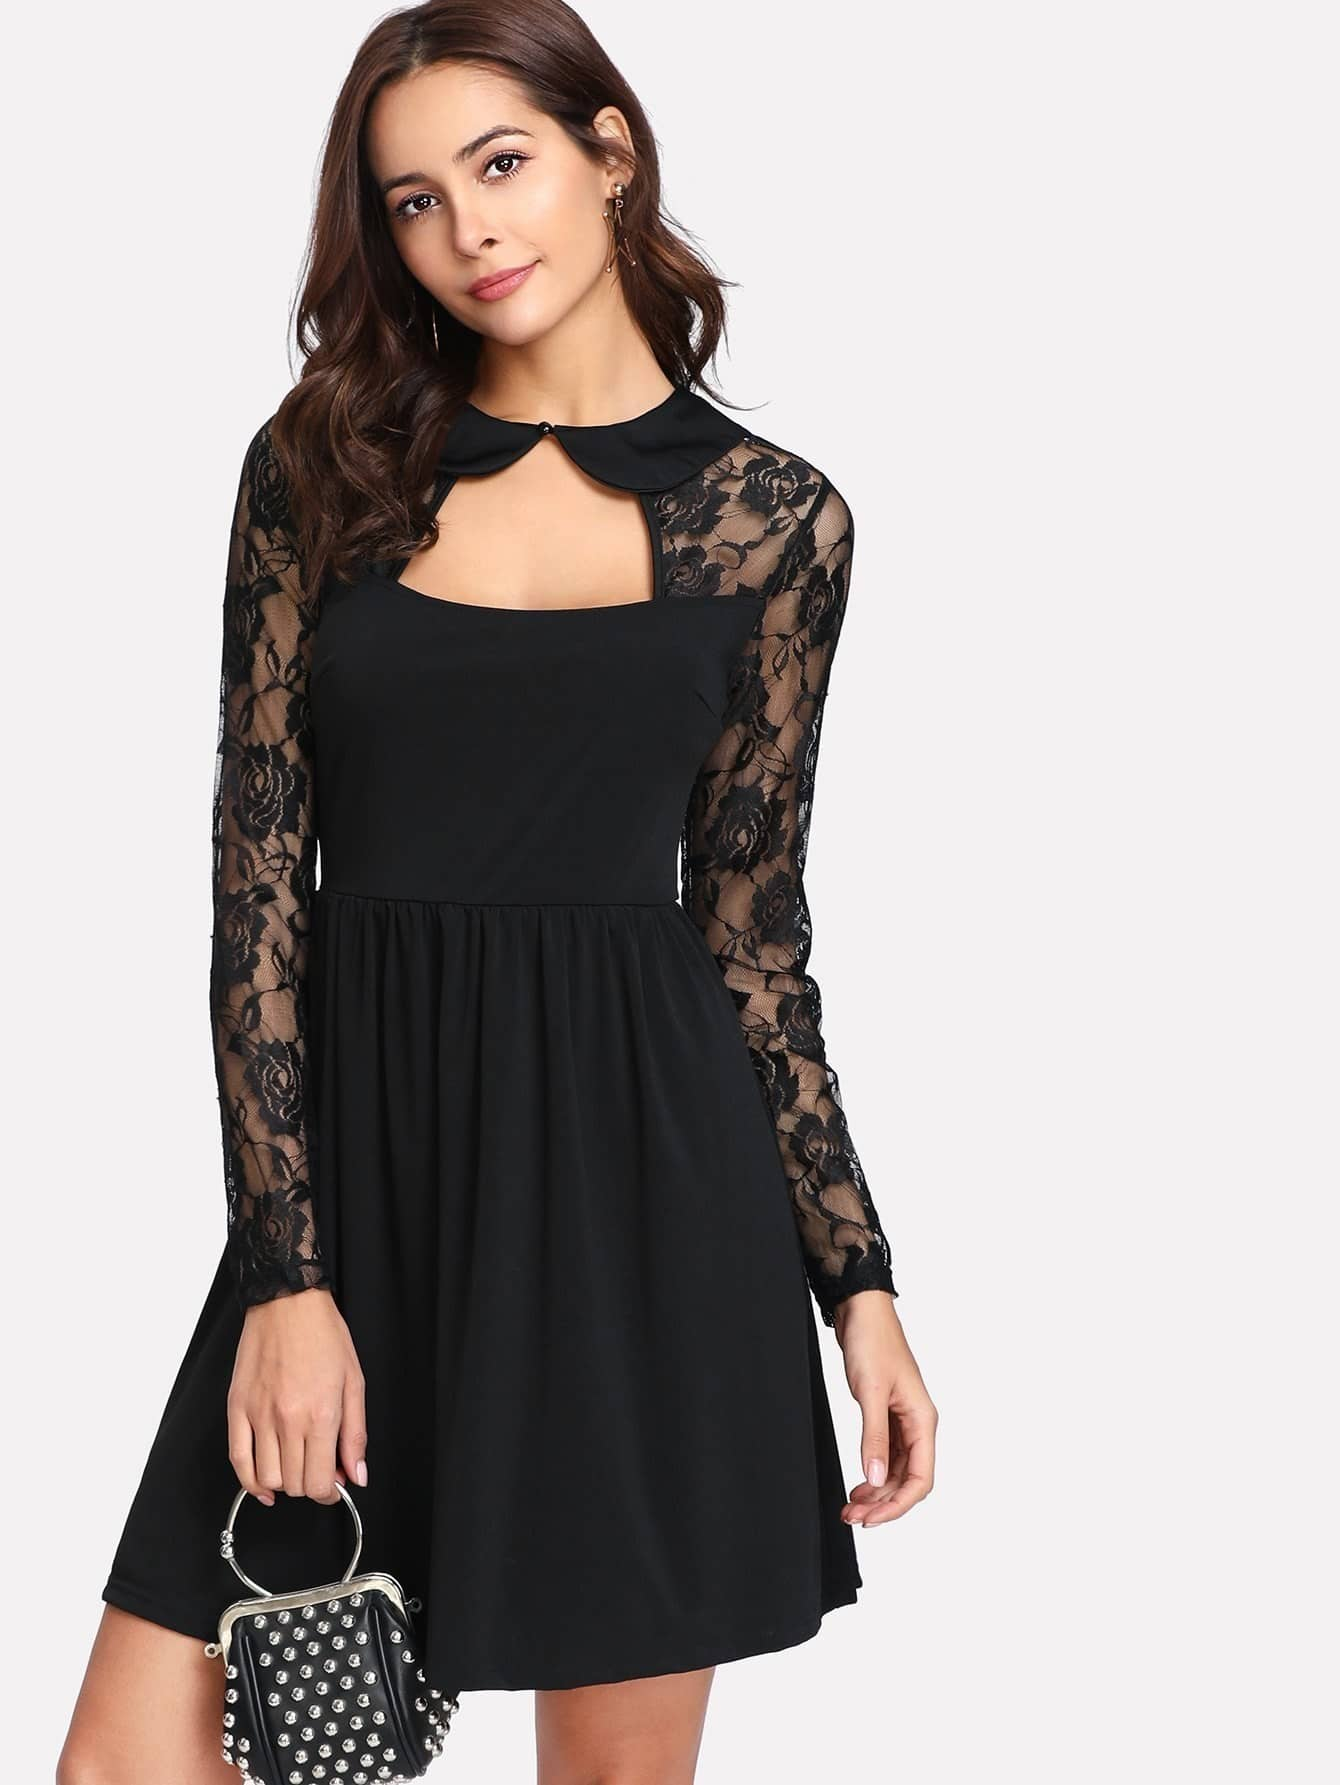 Contrast Lace Cut Out Front And Back Dress cut out front split backless dress